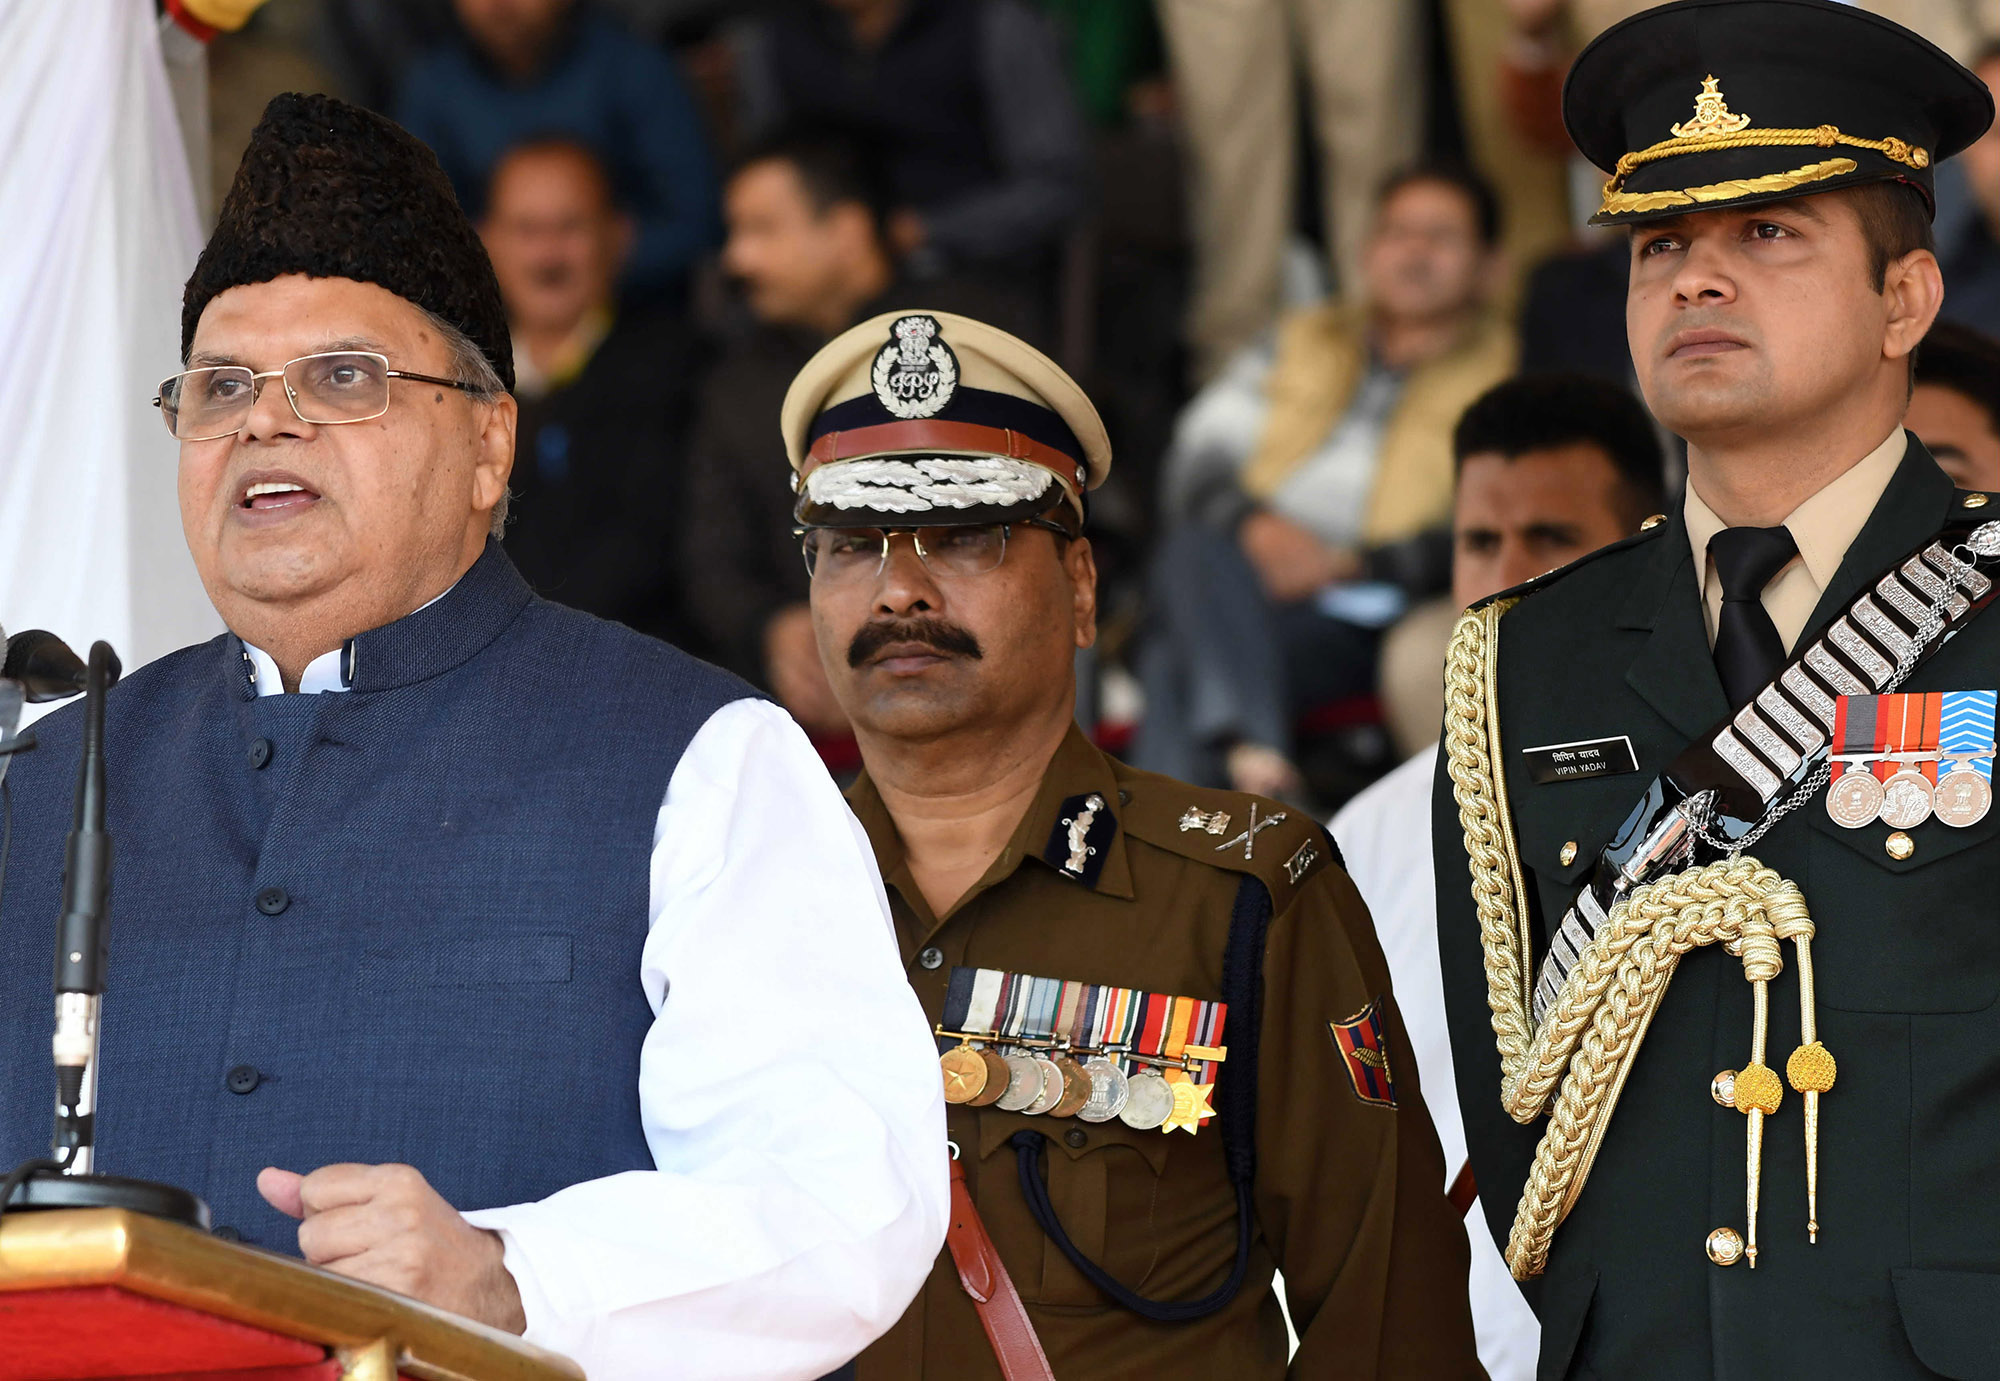 High drama as Governor dissolves Jammu & Kashmir assemblyThe move is seen as an attempt by the BJP to control the narrative in conflict-ridden Kashmir